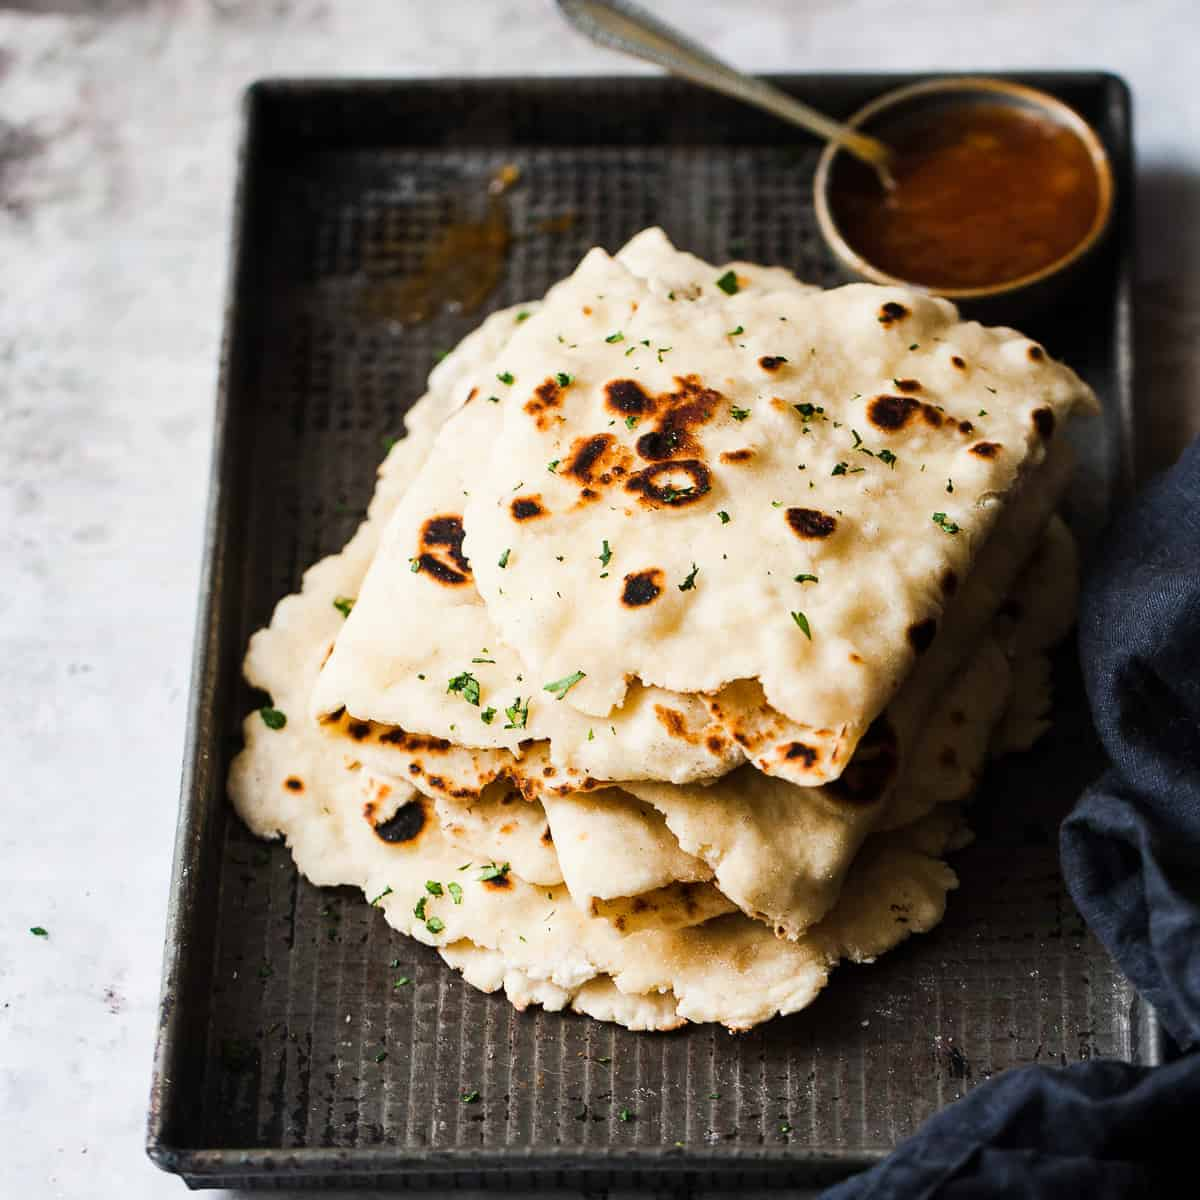 naan bread using only 2 ingredients. Simple yeast free.